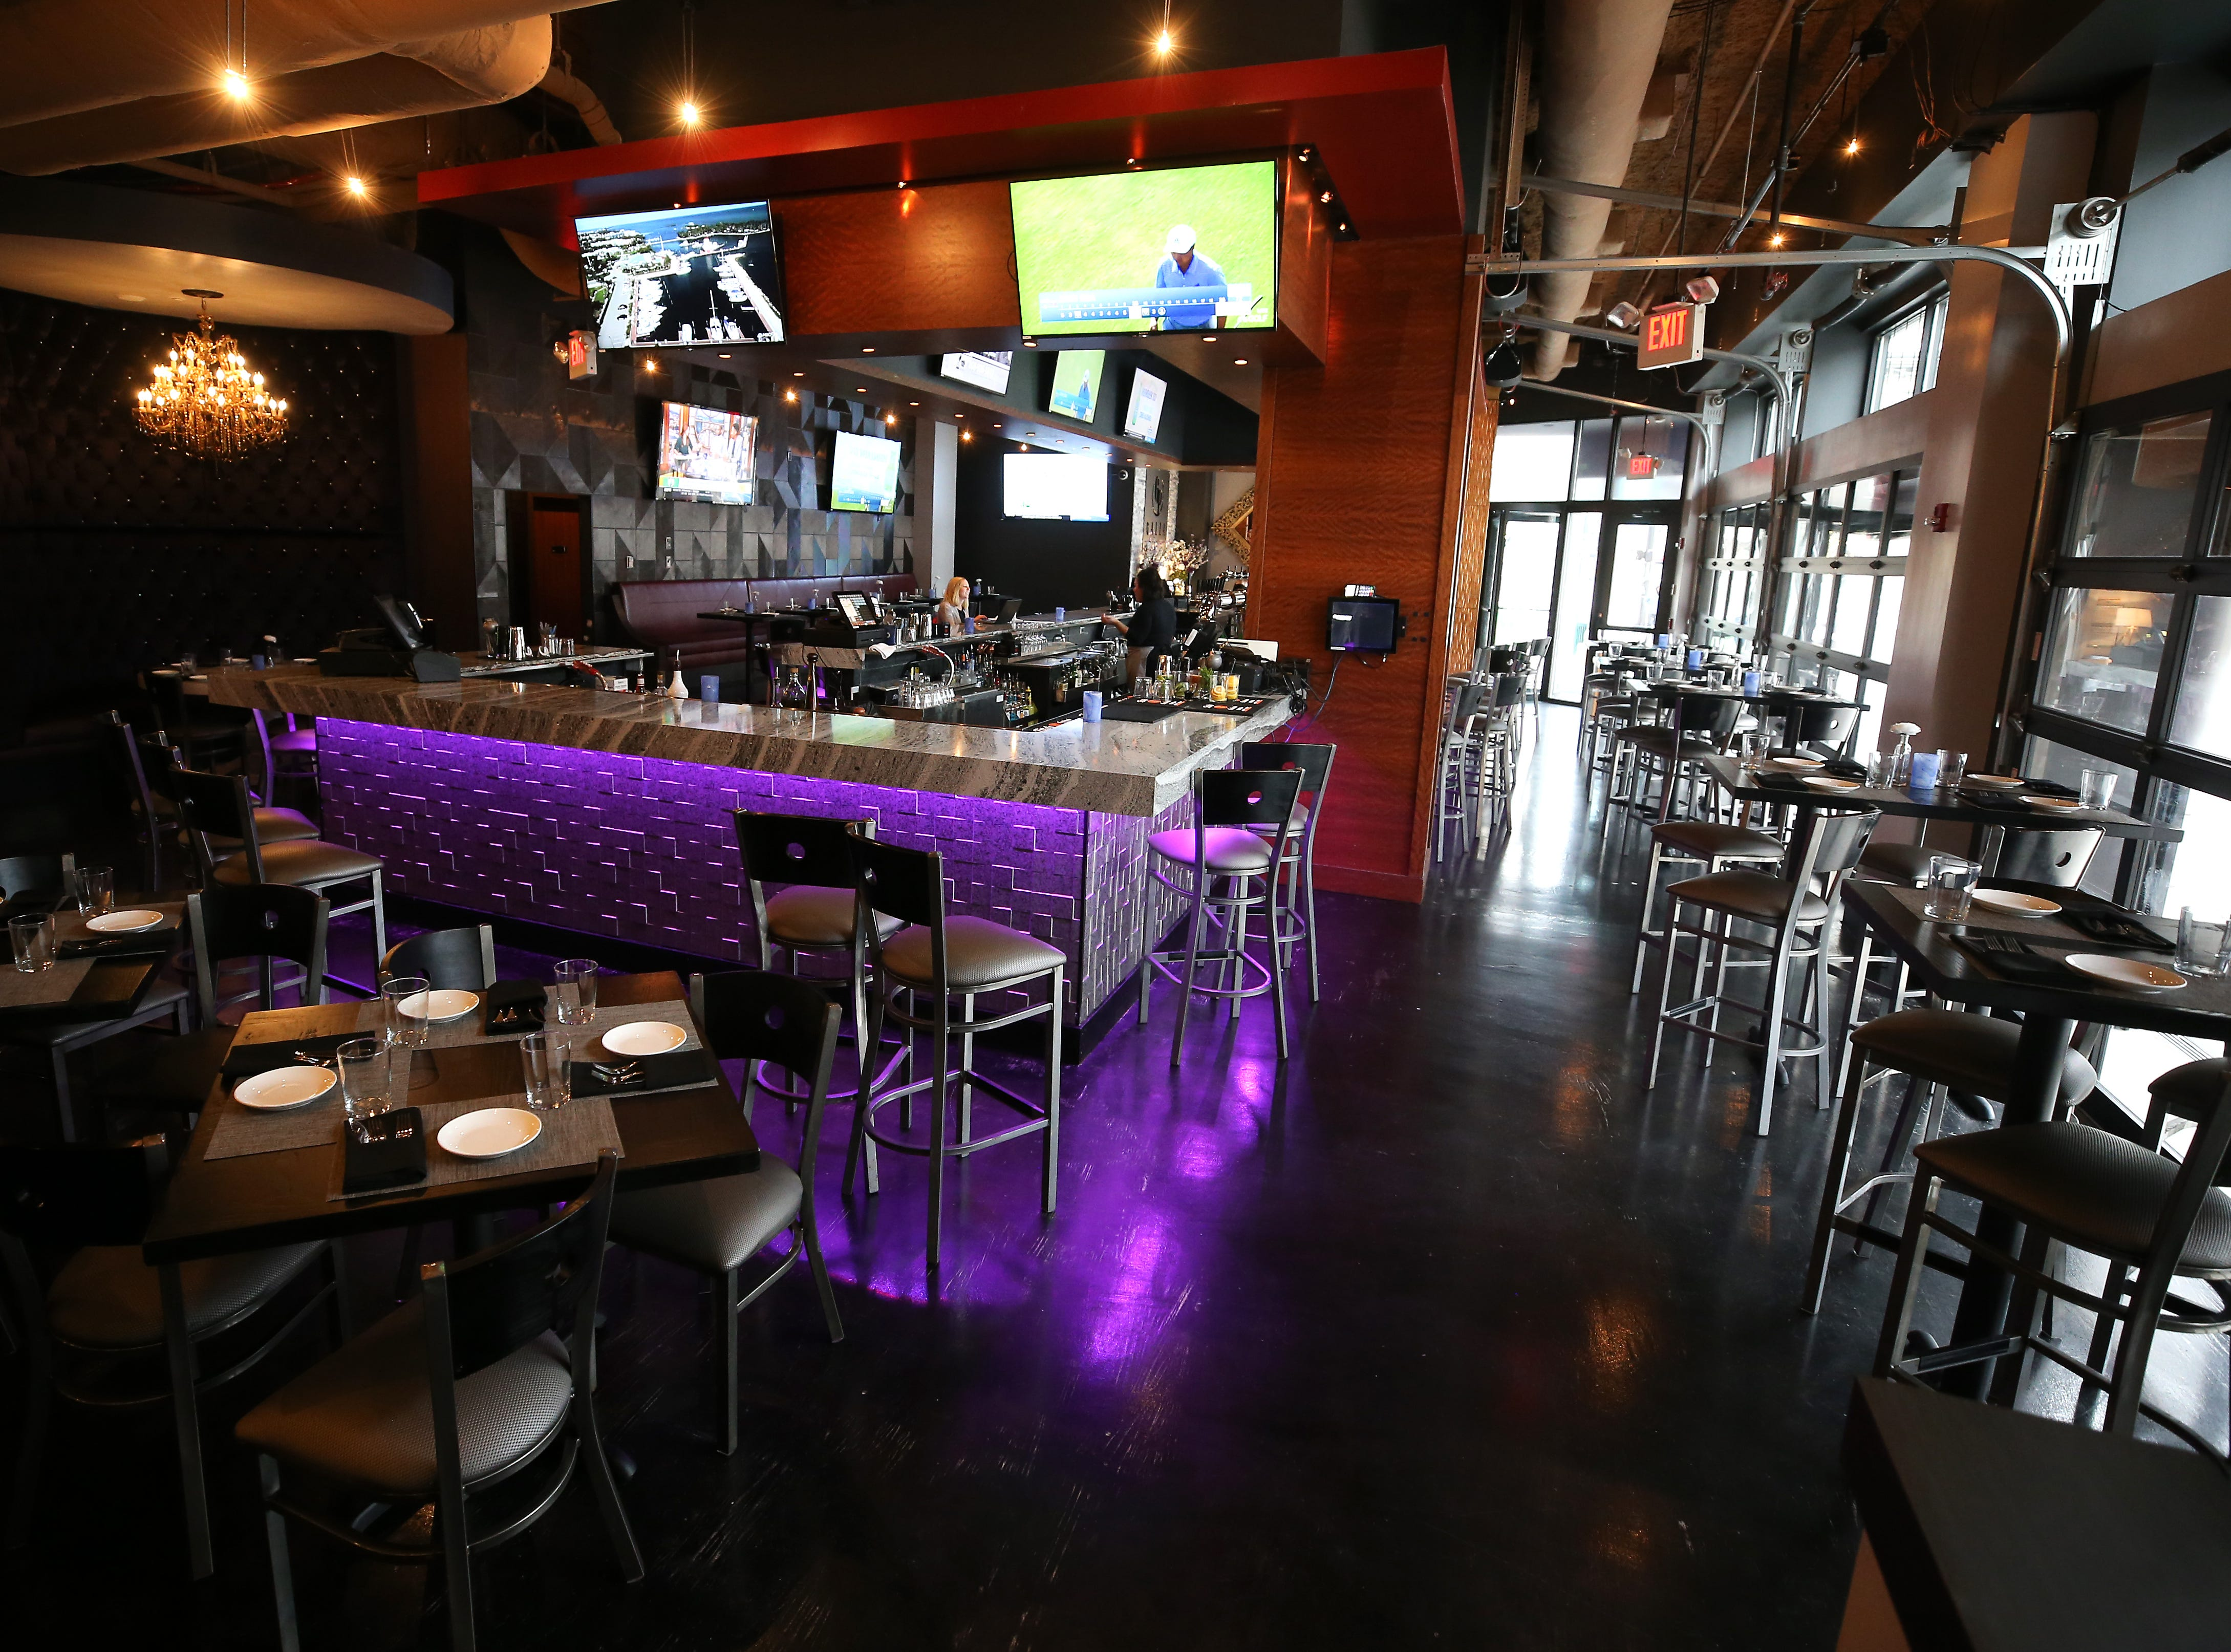 View of the main bar and seating, pictured, Tuesday, Jan. 15, 2019, at Galla Park restaurant at The Banks in Cincinnati.